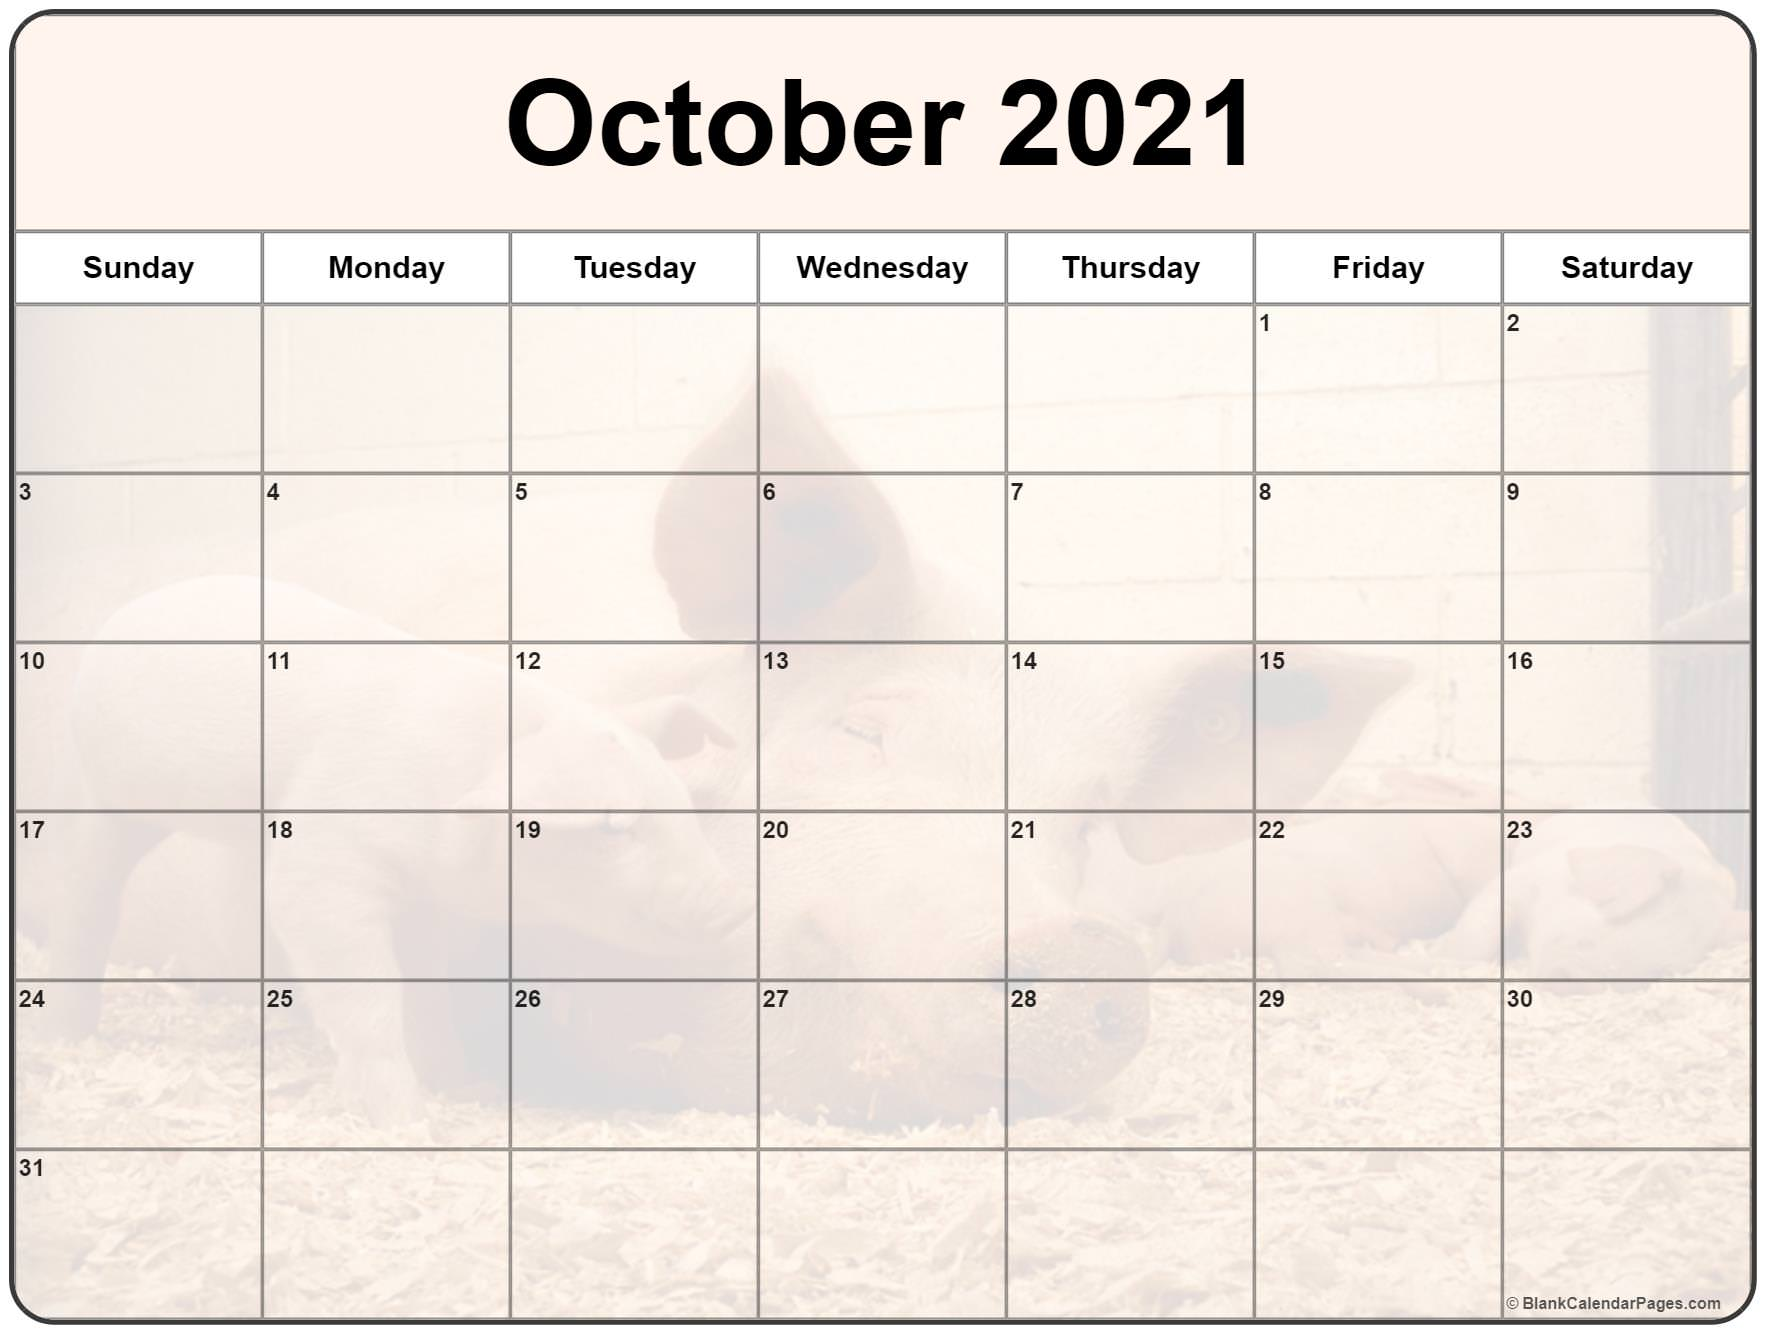 October 2021 picture calendar with cute piglet filters